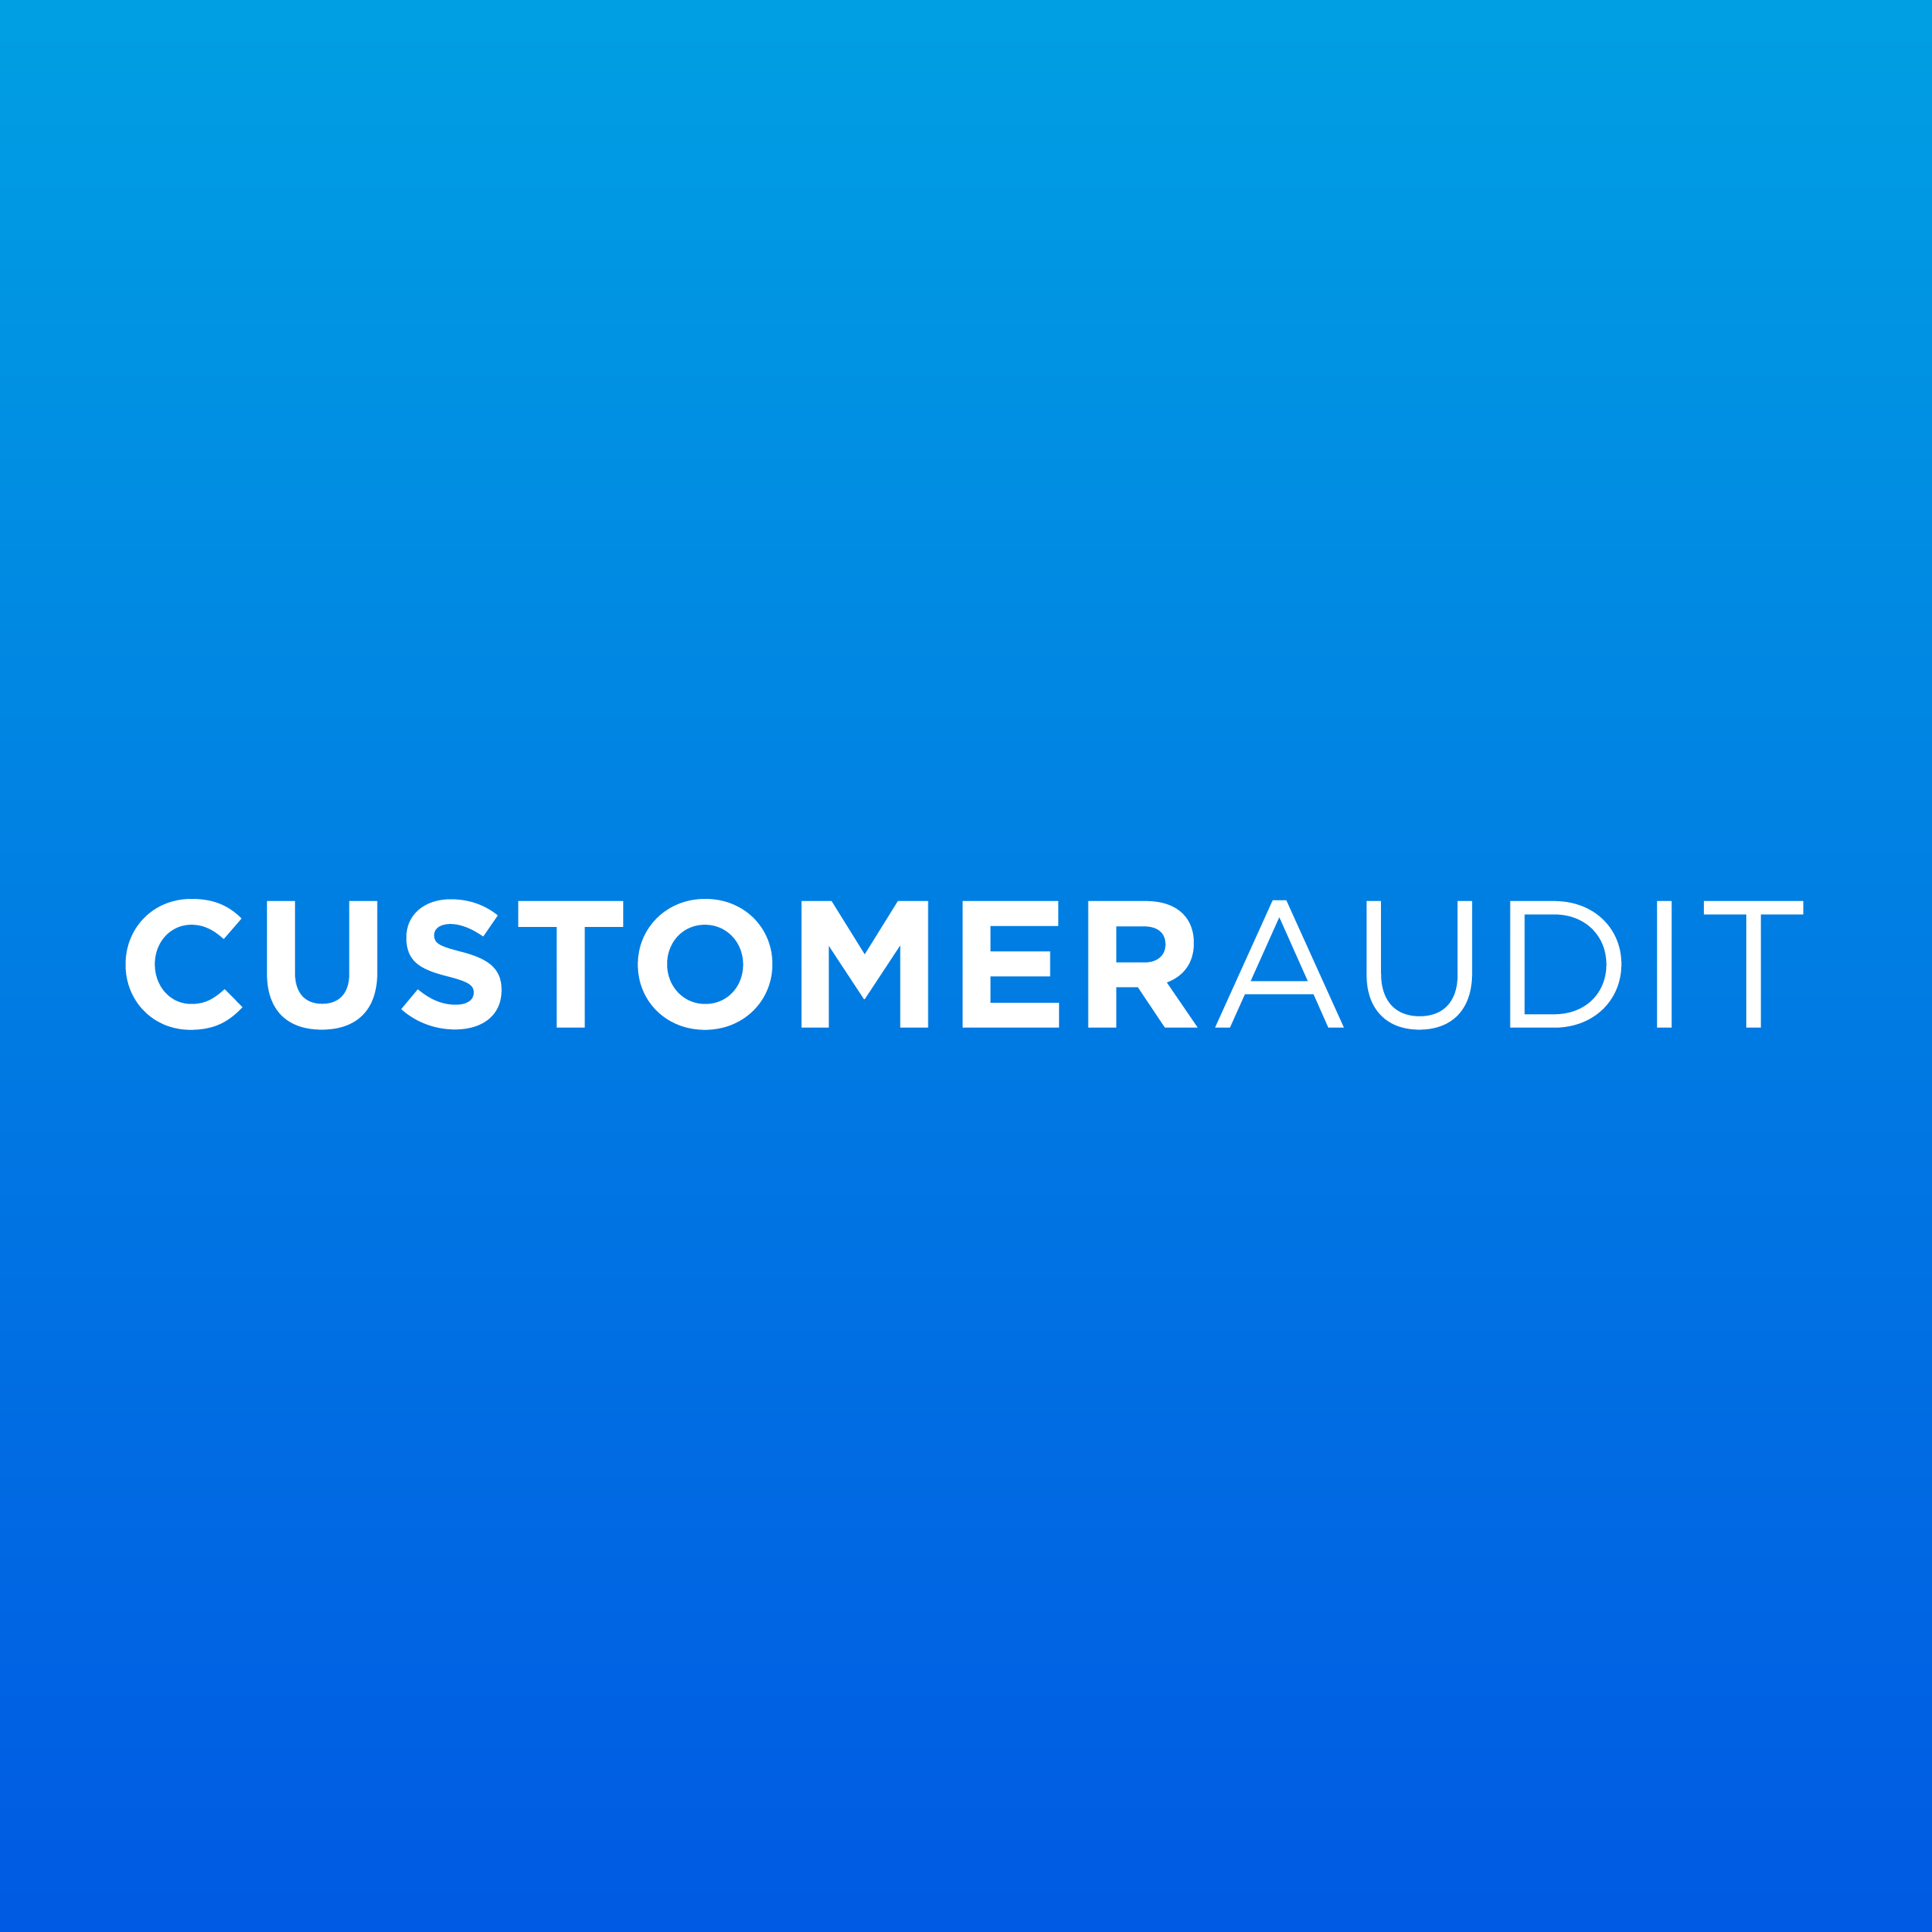 Customer Audit